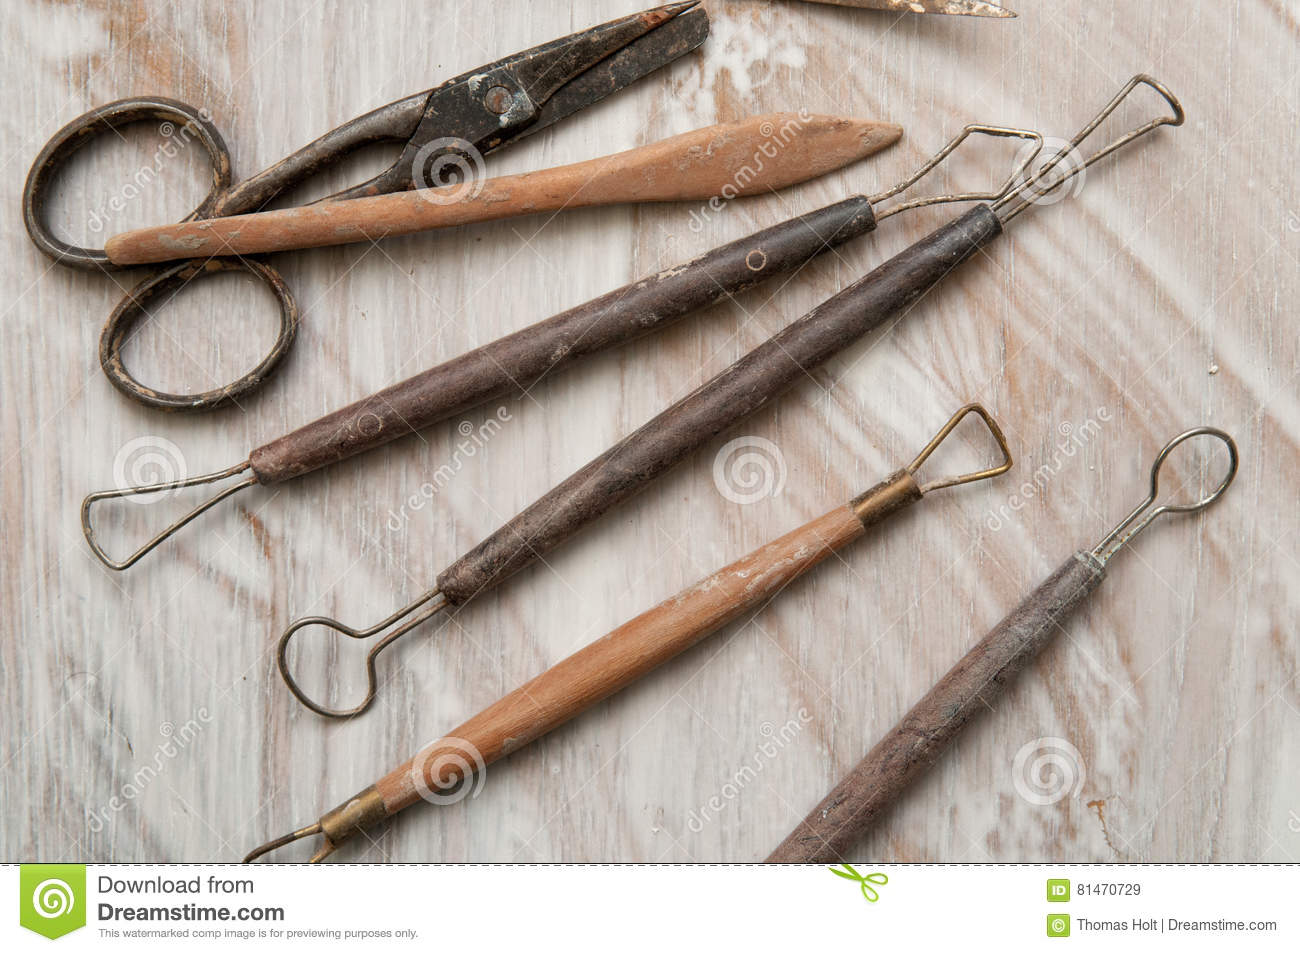 Pottery making tools